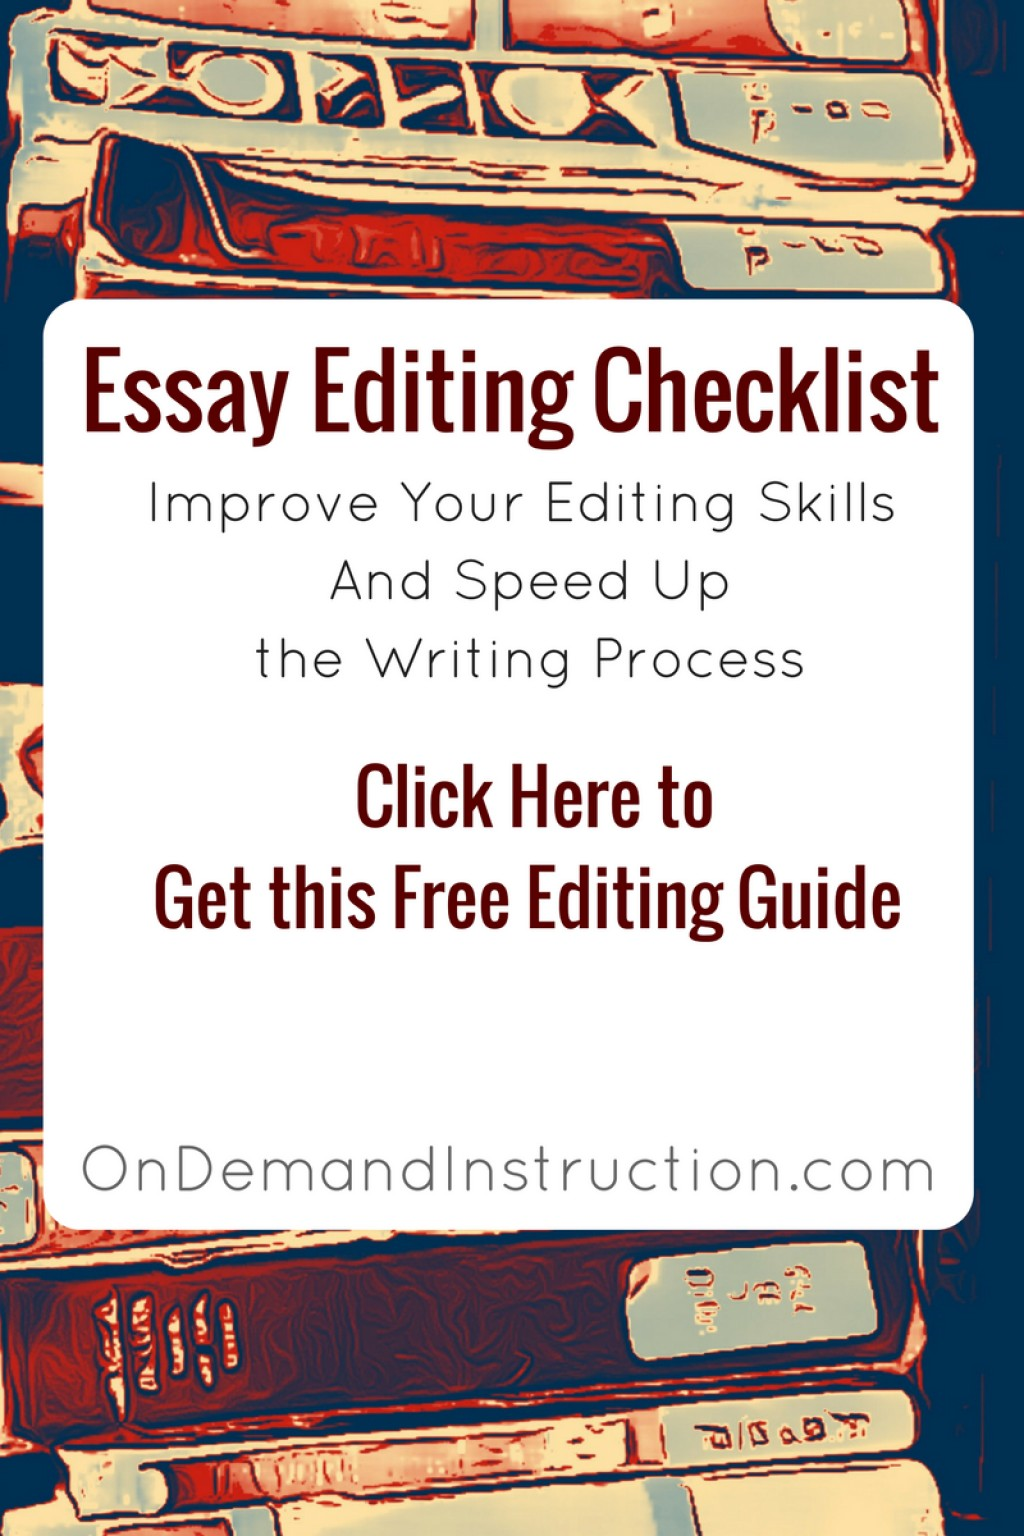 008 Free Essay Editor Rare College Online Proofreader Trial Large